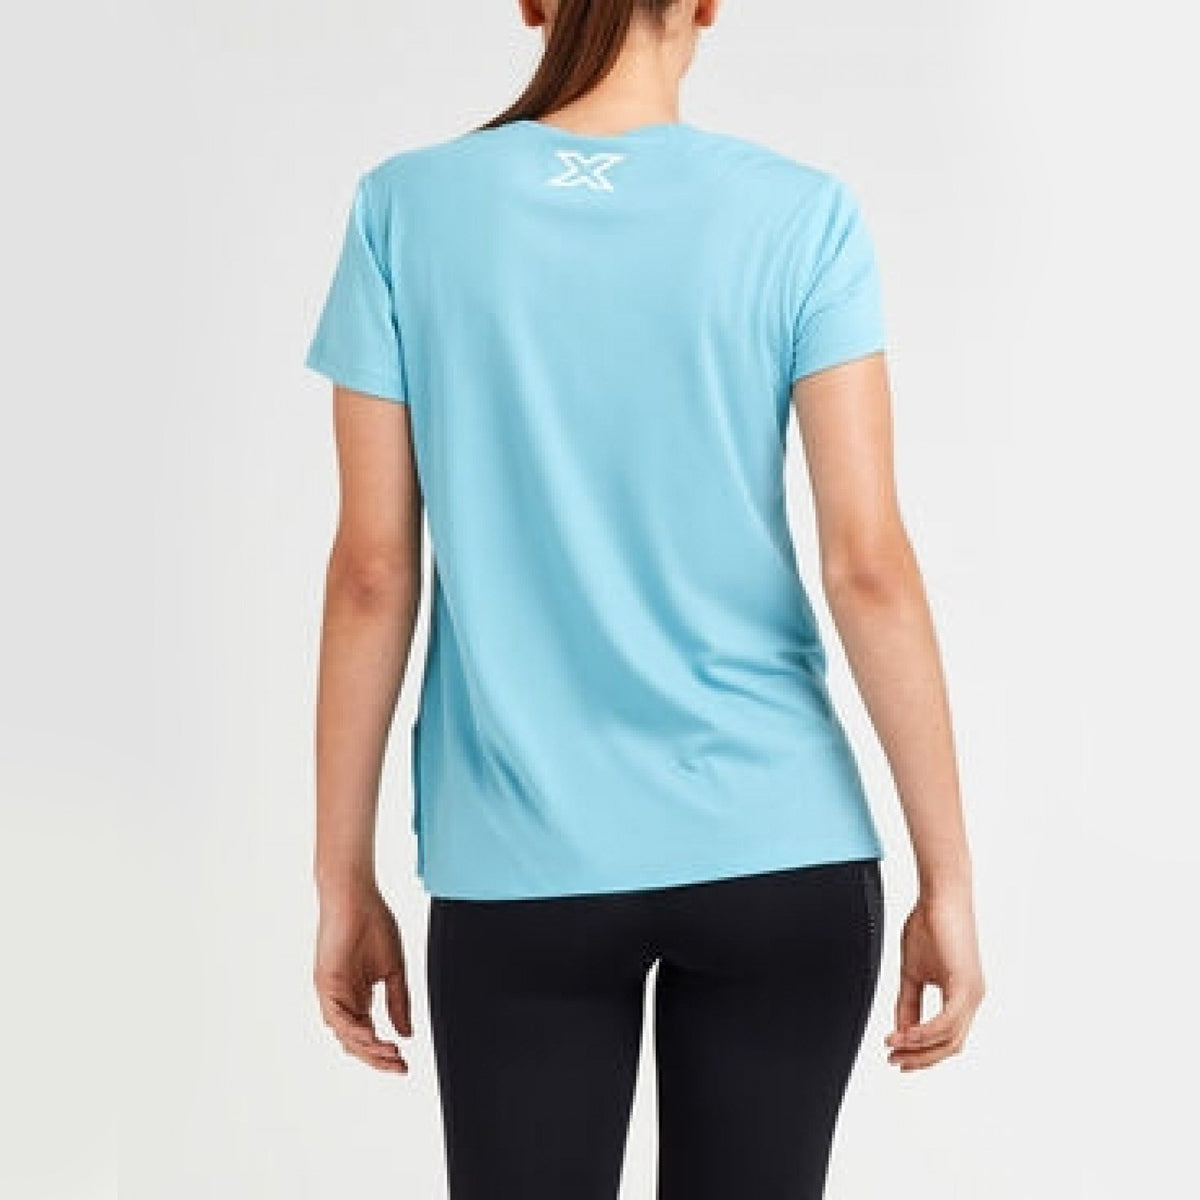 2XU Xvent G2 T-Shirt Womens - Sole Motive